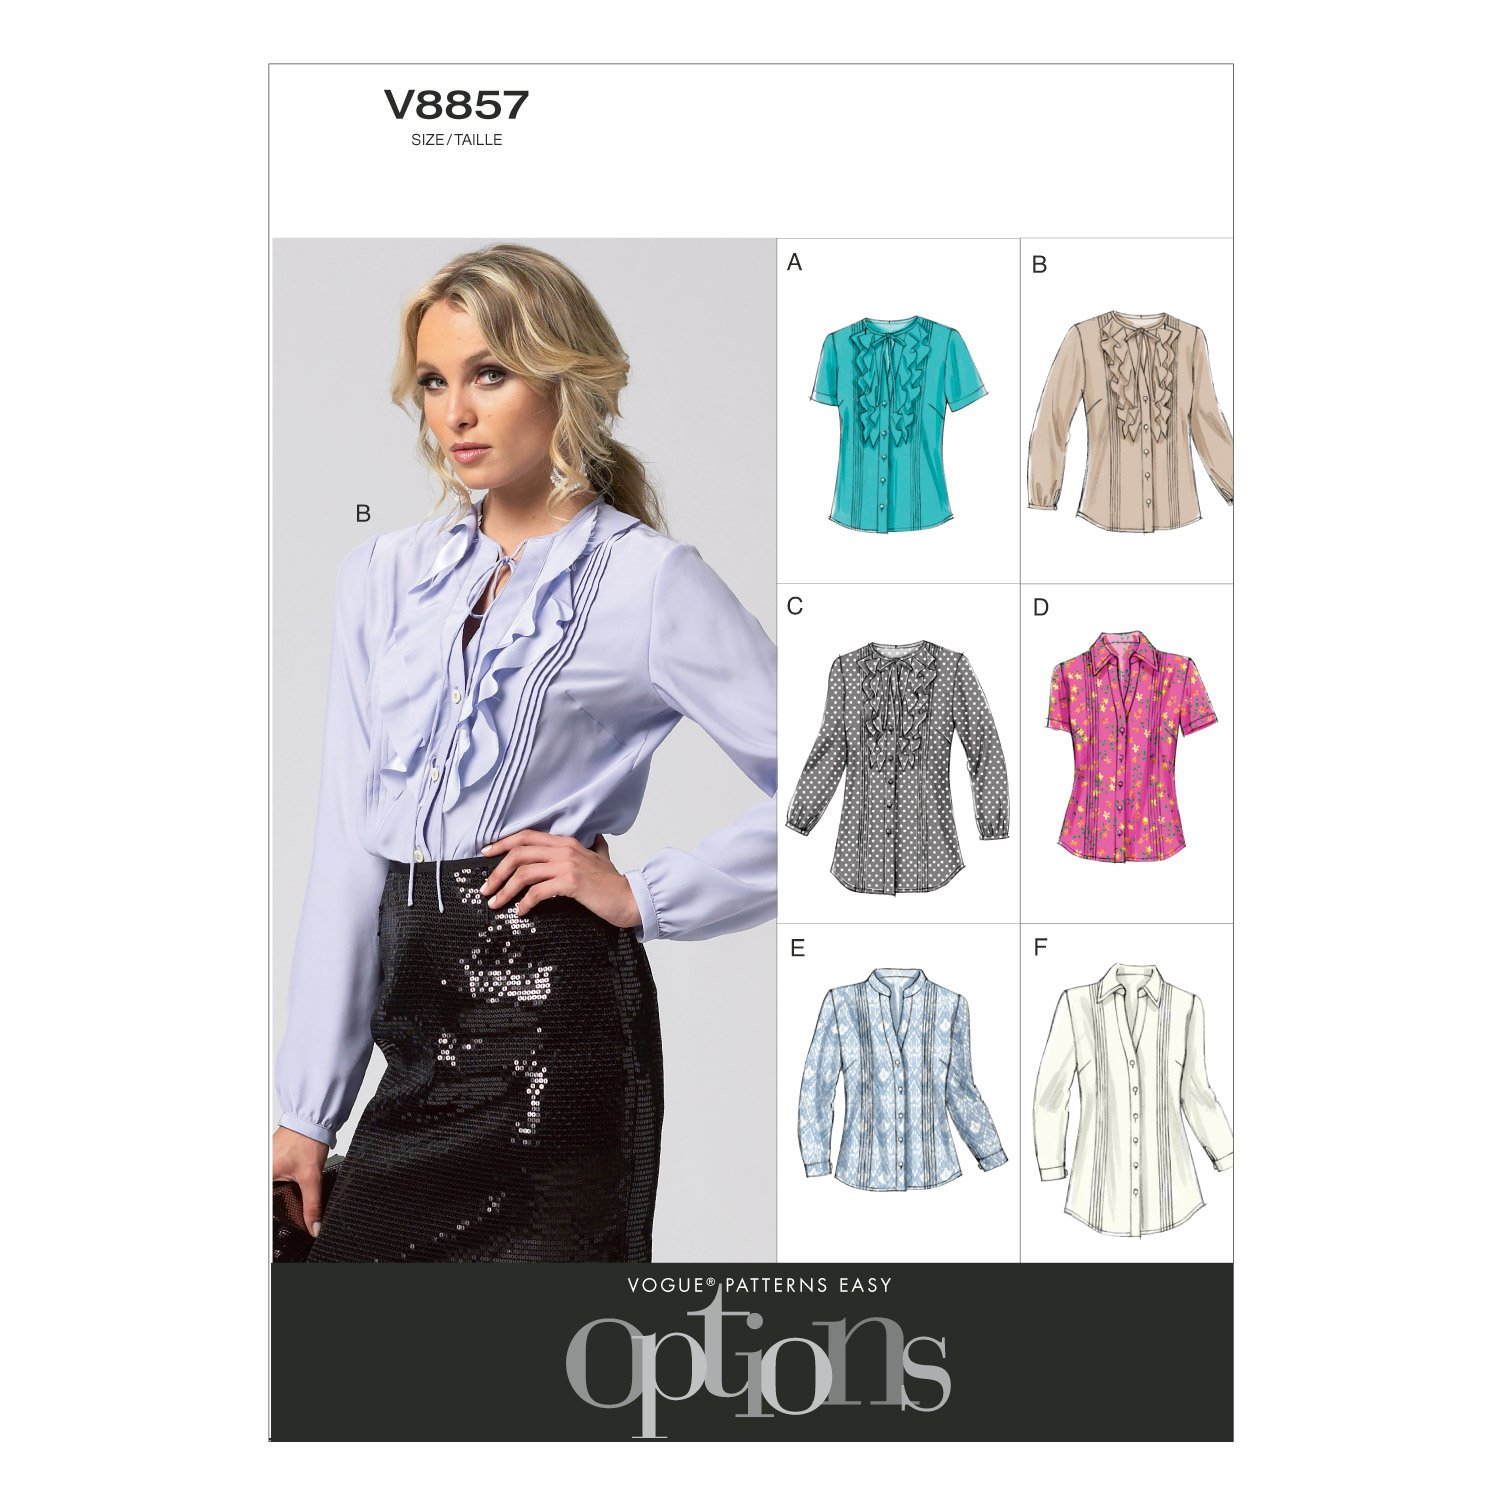 Vogue Patterns V8857 - Patrones de costura para blusas y túnicas de ...